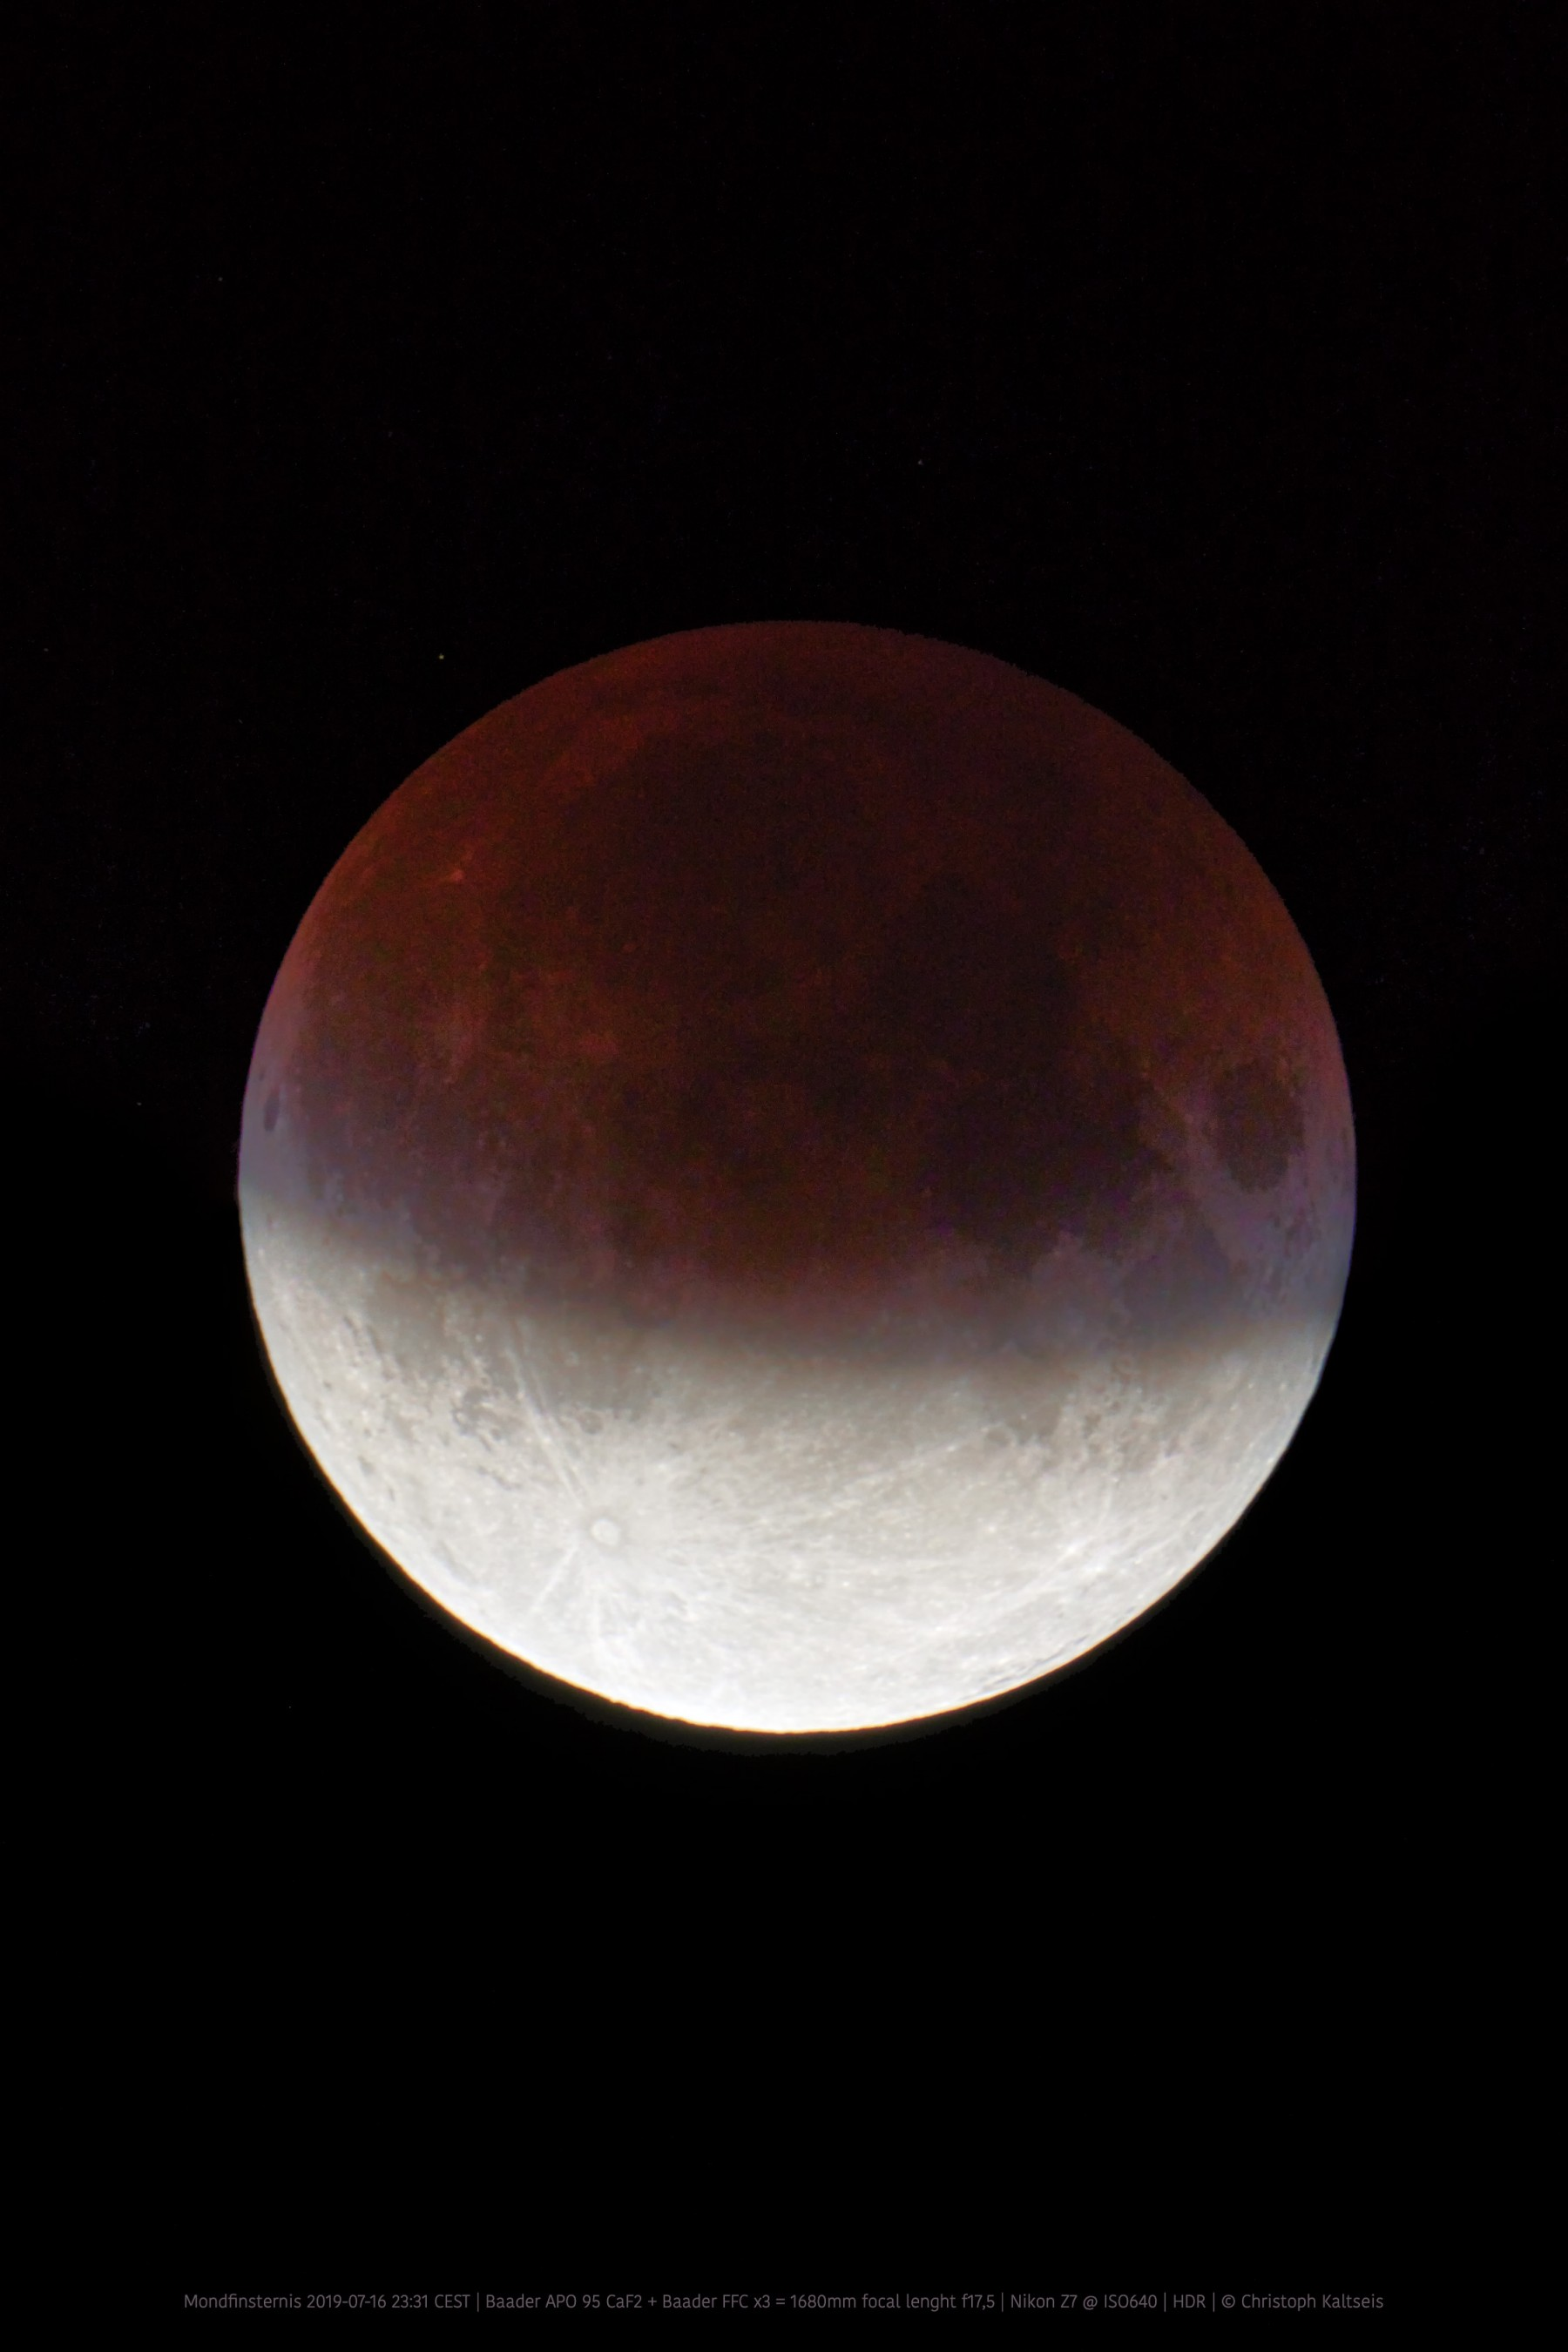 Application image: Partiel Lunar Eclipse 2019 -07 -16, taken with Baader APO95 CaF2 + Baader FFC x3 + Nikon Z7@ISO640, HDR, © C. Kaltseis